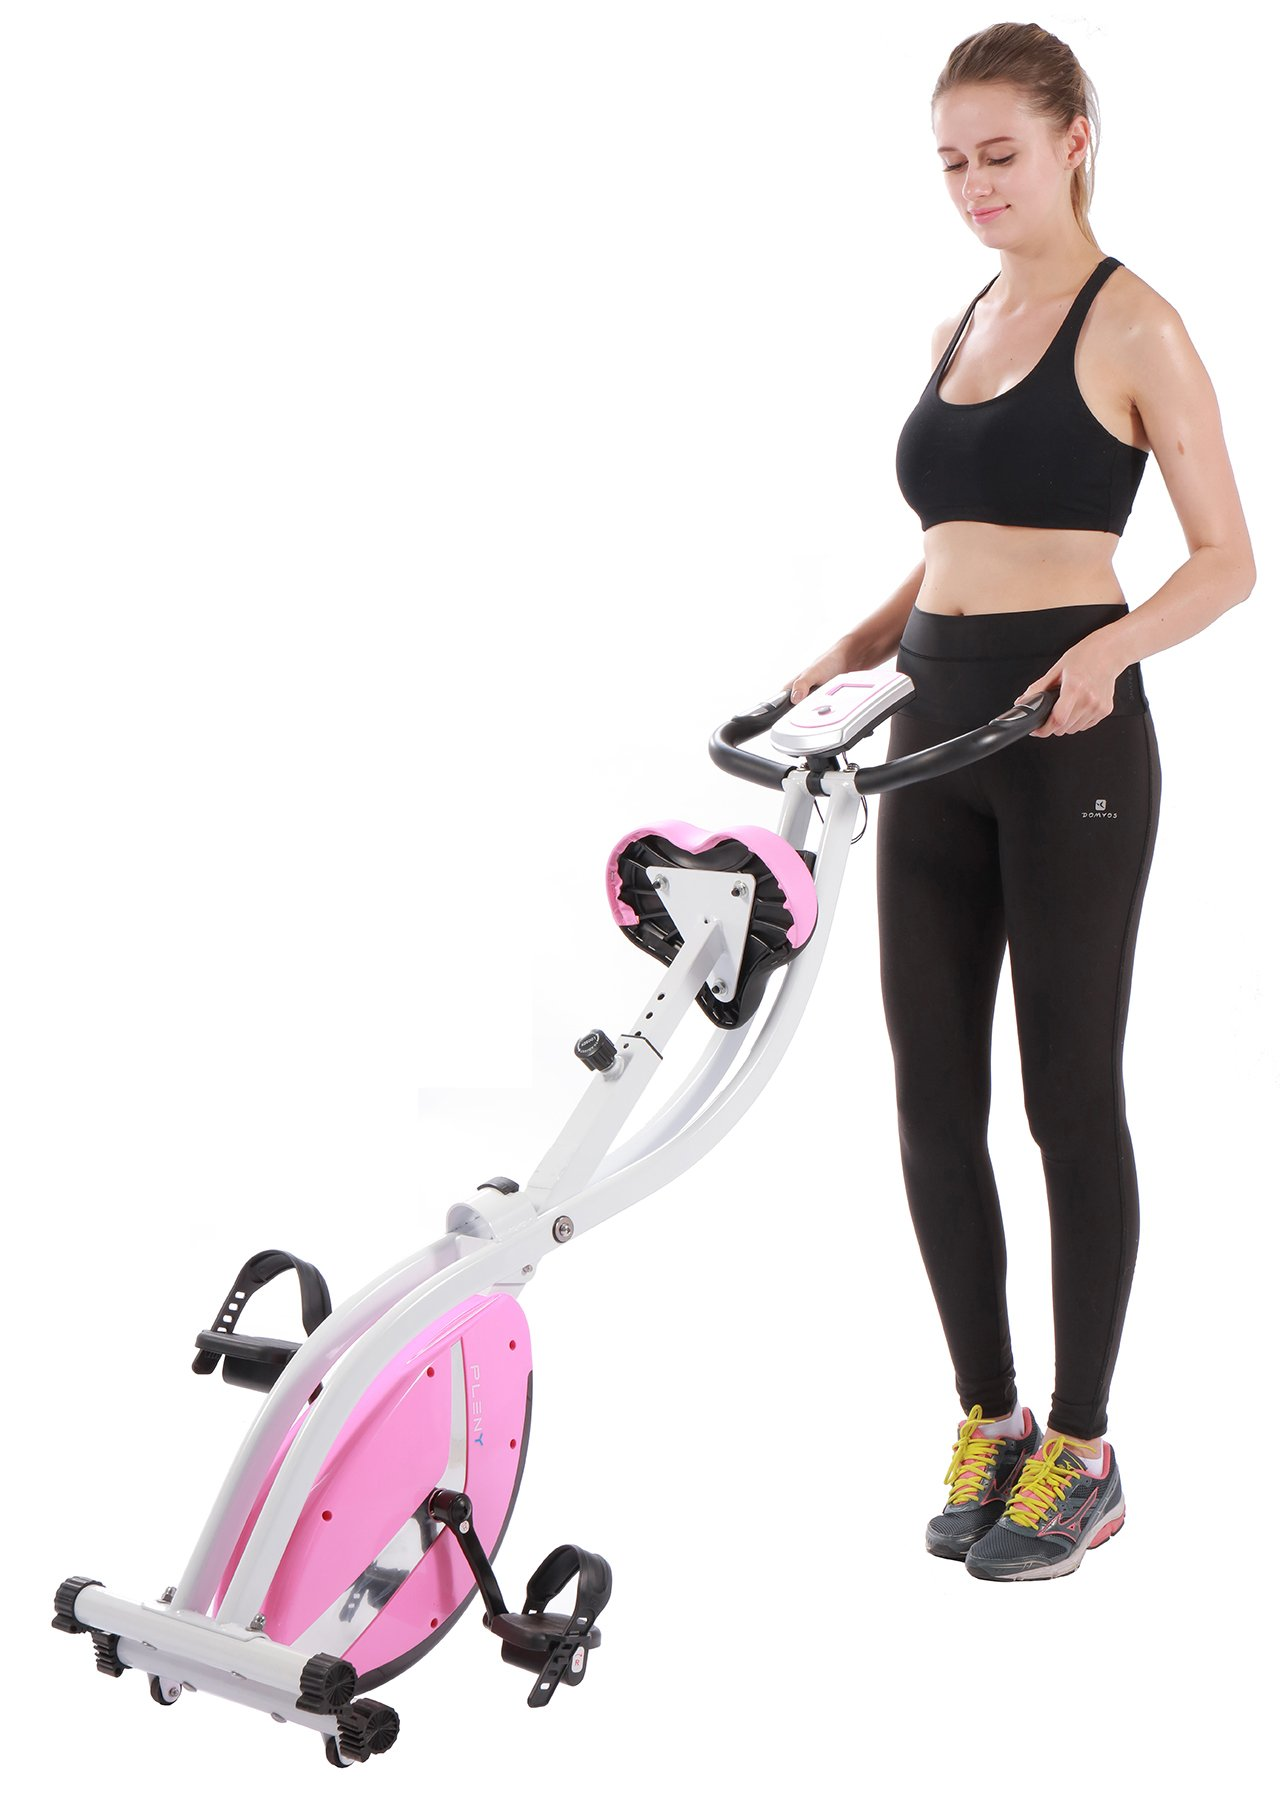 PLENY Foldable Upright Stationary Exercise Bike with 16 Level Resistance, New Exercise Monitor with Phone/Tablet Holder (Pink) by PLENY (Image #7)